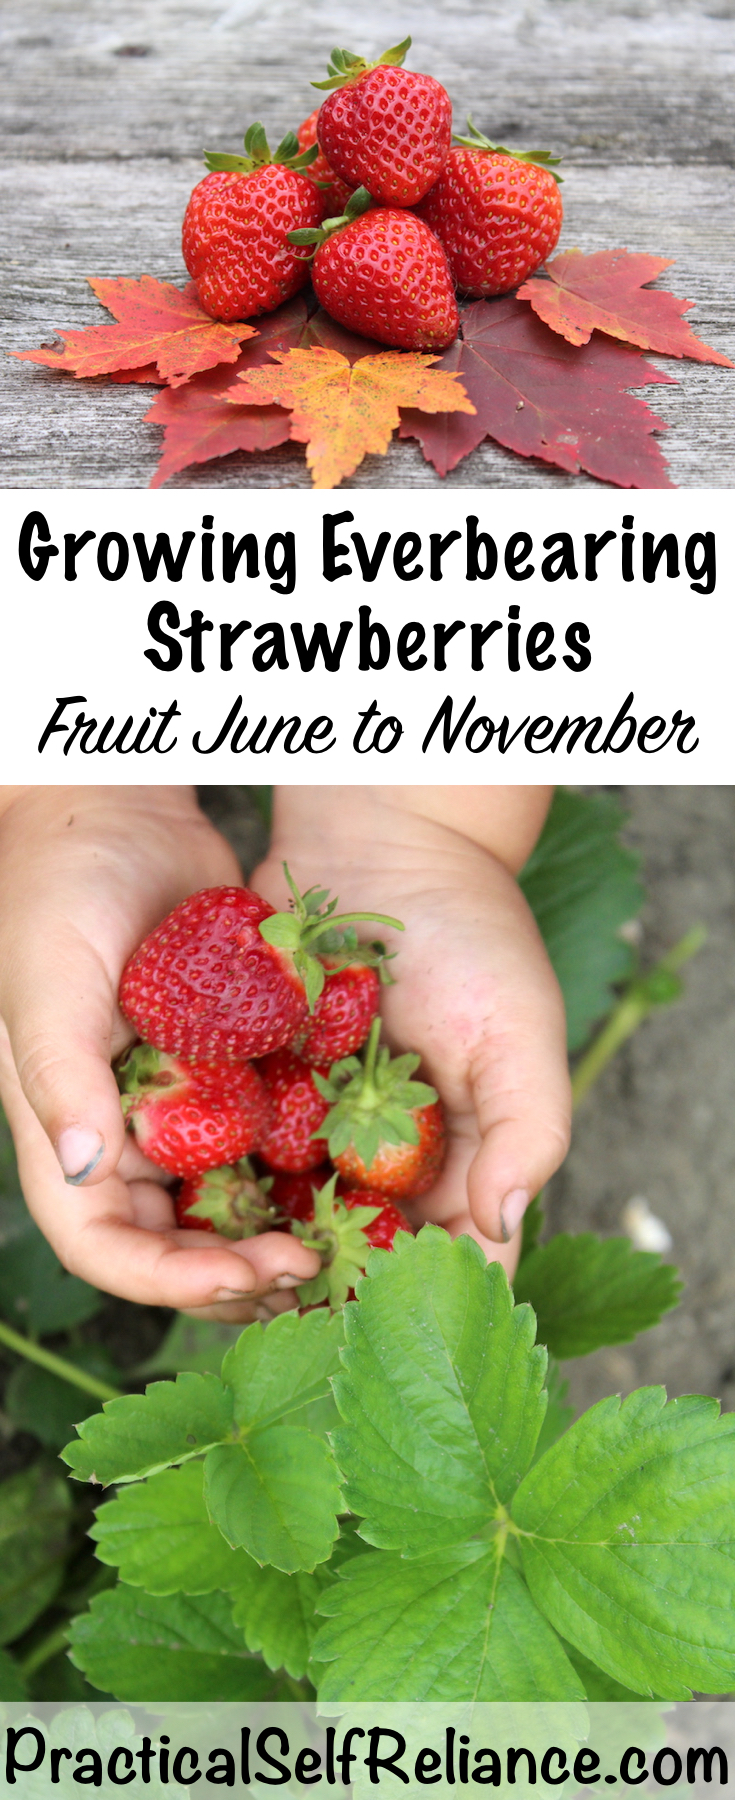 Growing Everbearing Strawberries